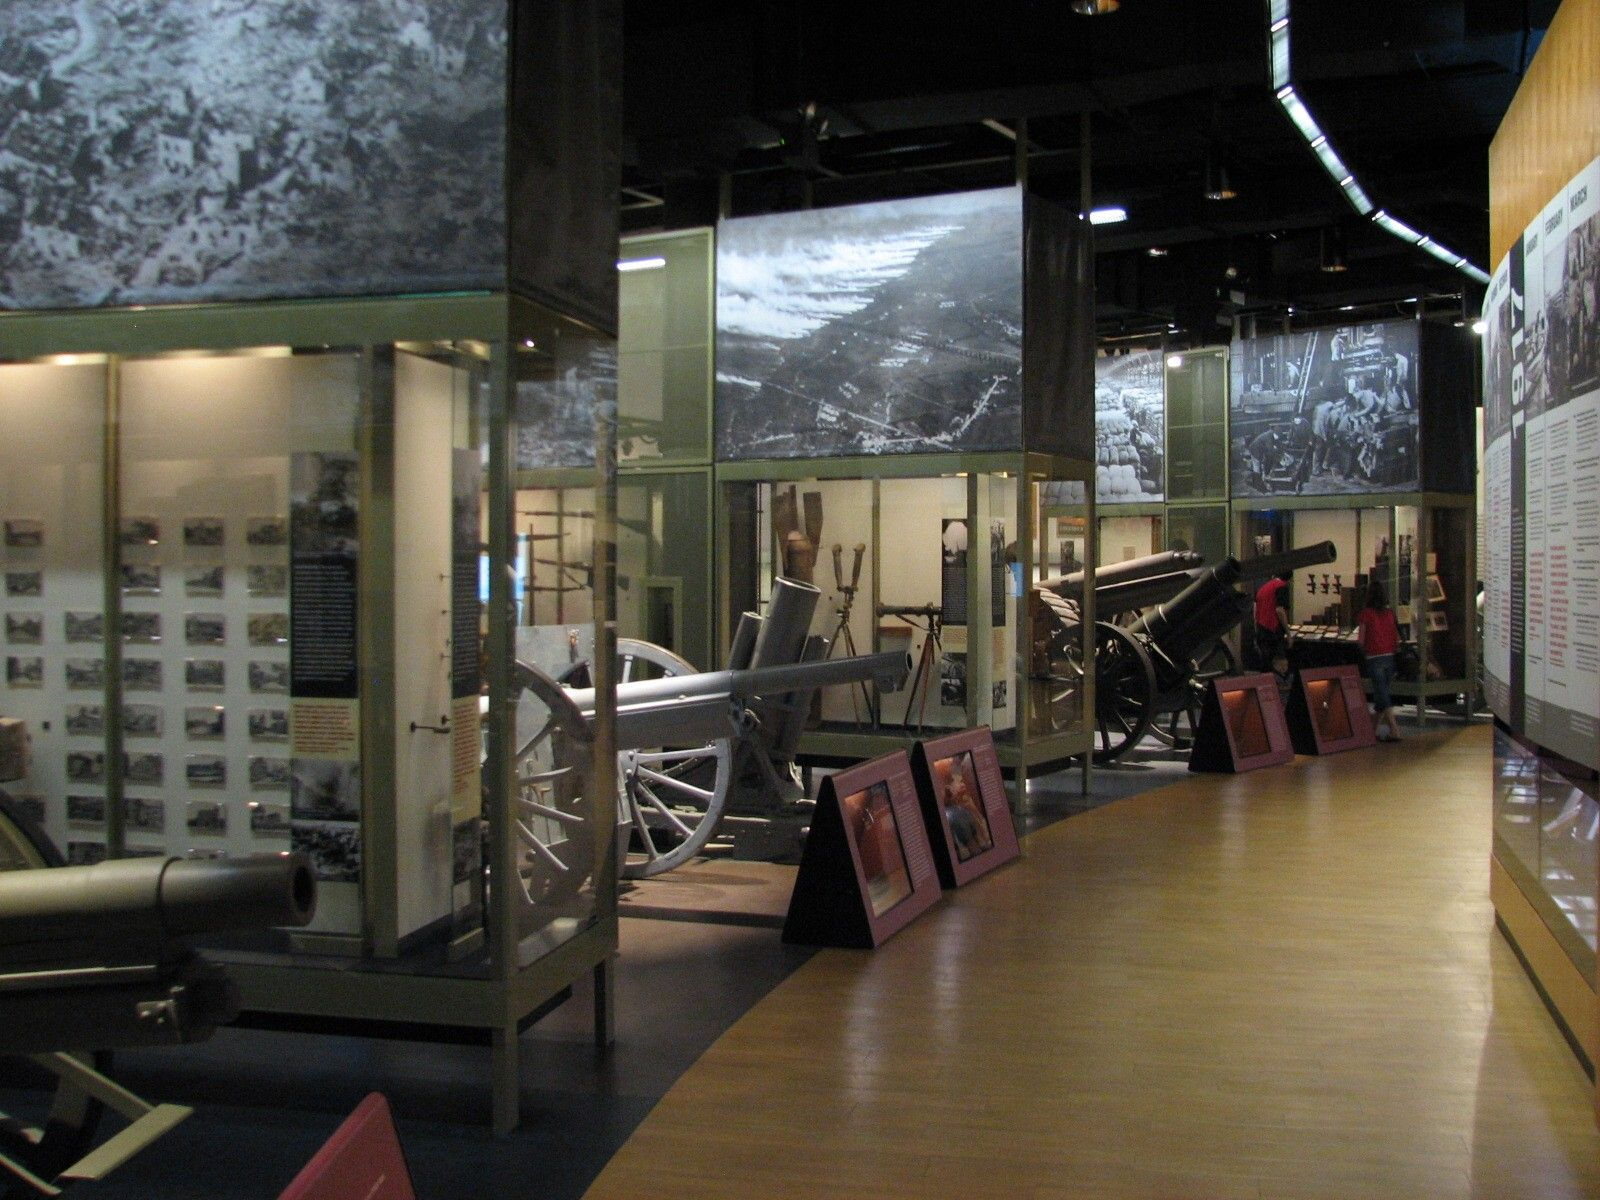 Spread your wings and explore the world of air and space travel at the Canada Aviation and Space Museum! Explore the history of aviation through one of the .